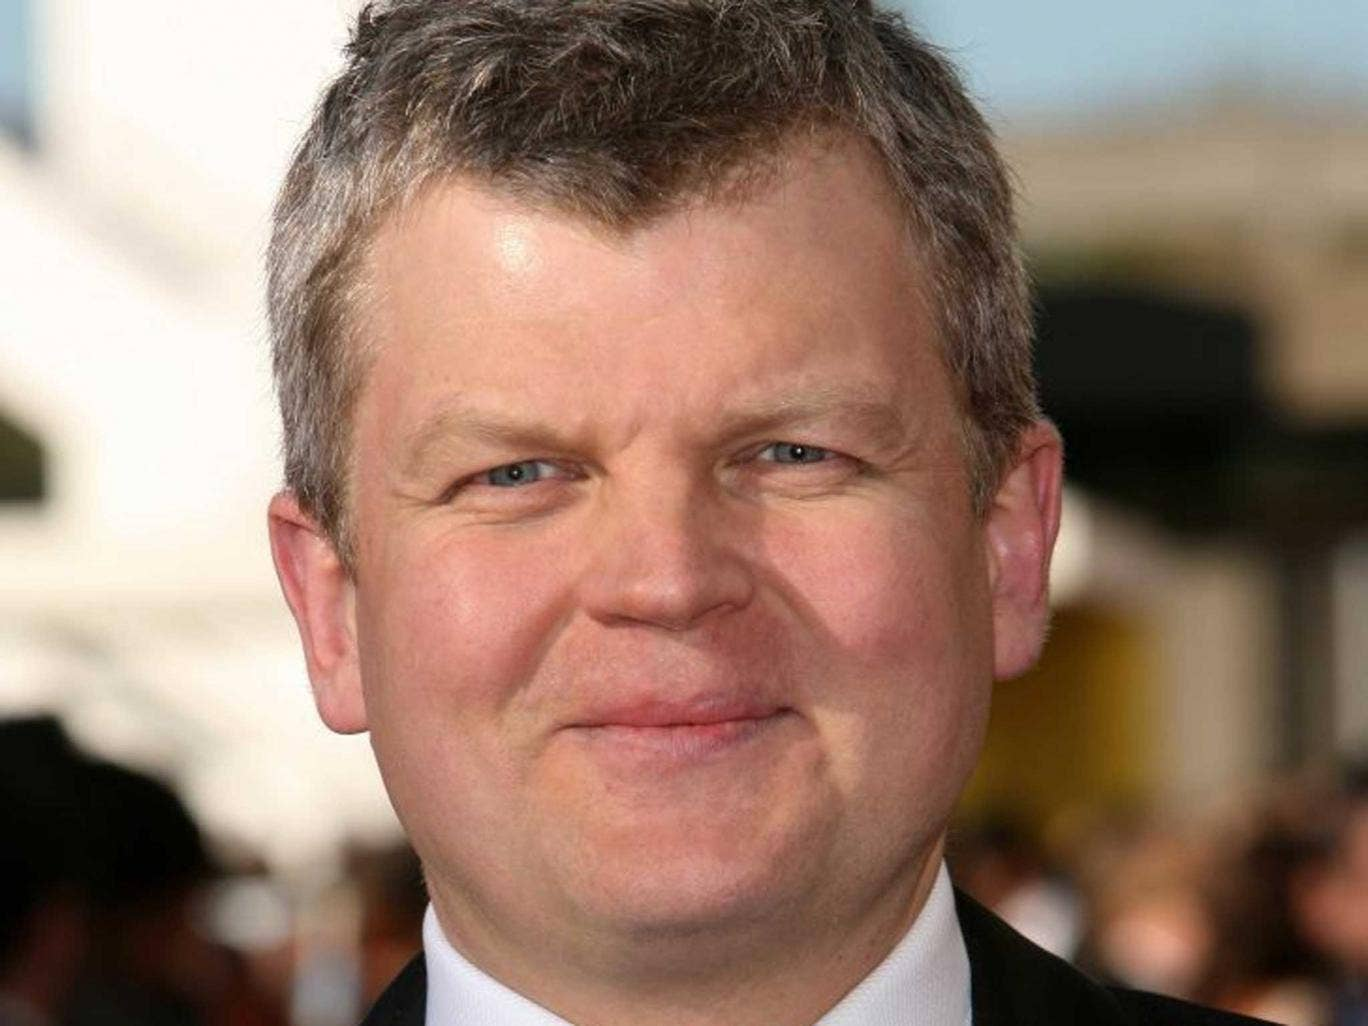 Adrian Chiles was one of the original presenters of Radio 5 Live